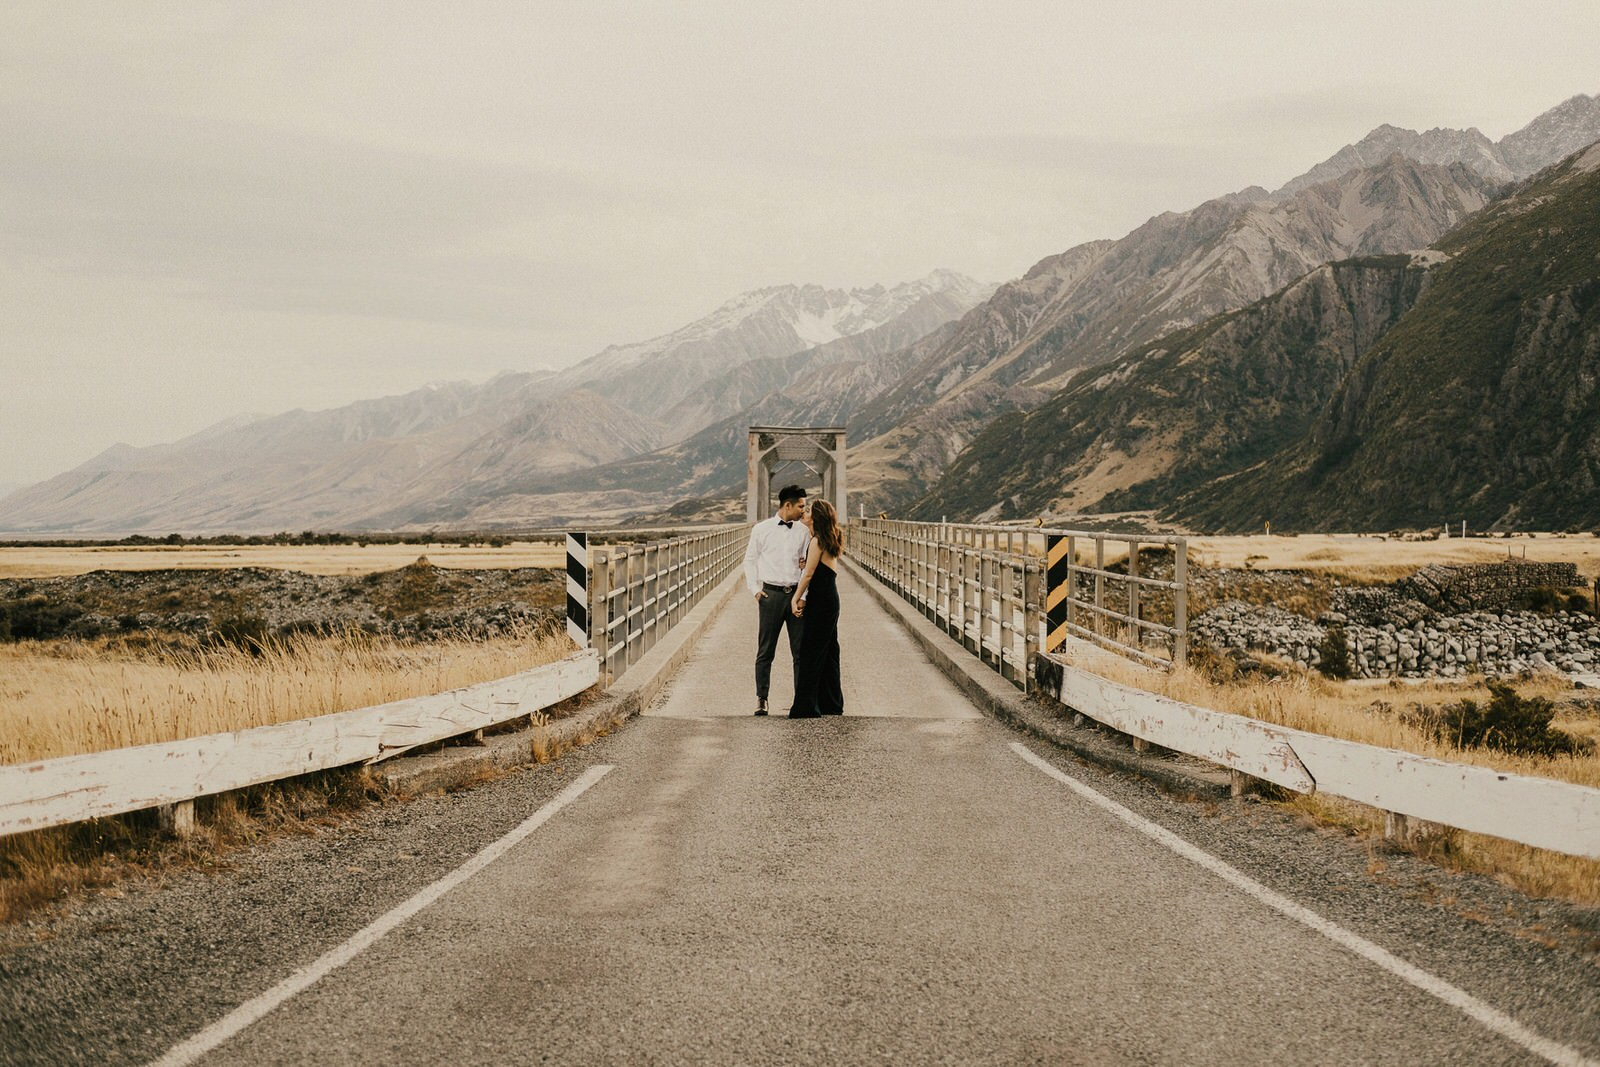 Pre-wedding photos at Aoraki Mt Cook National Park, New Zealand